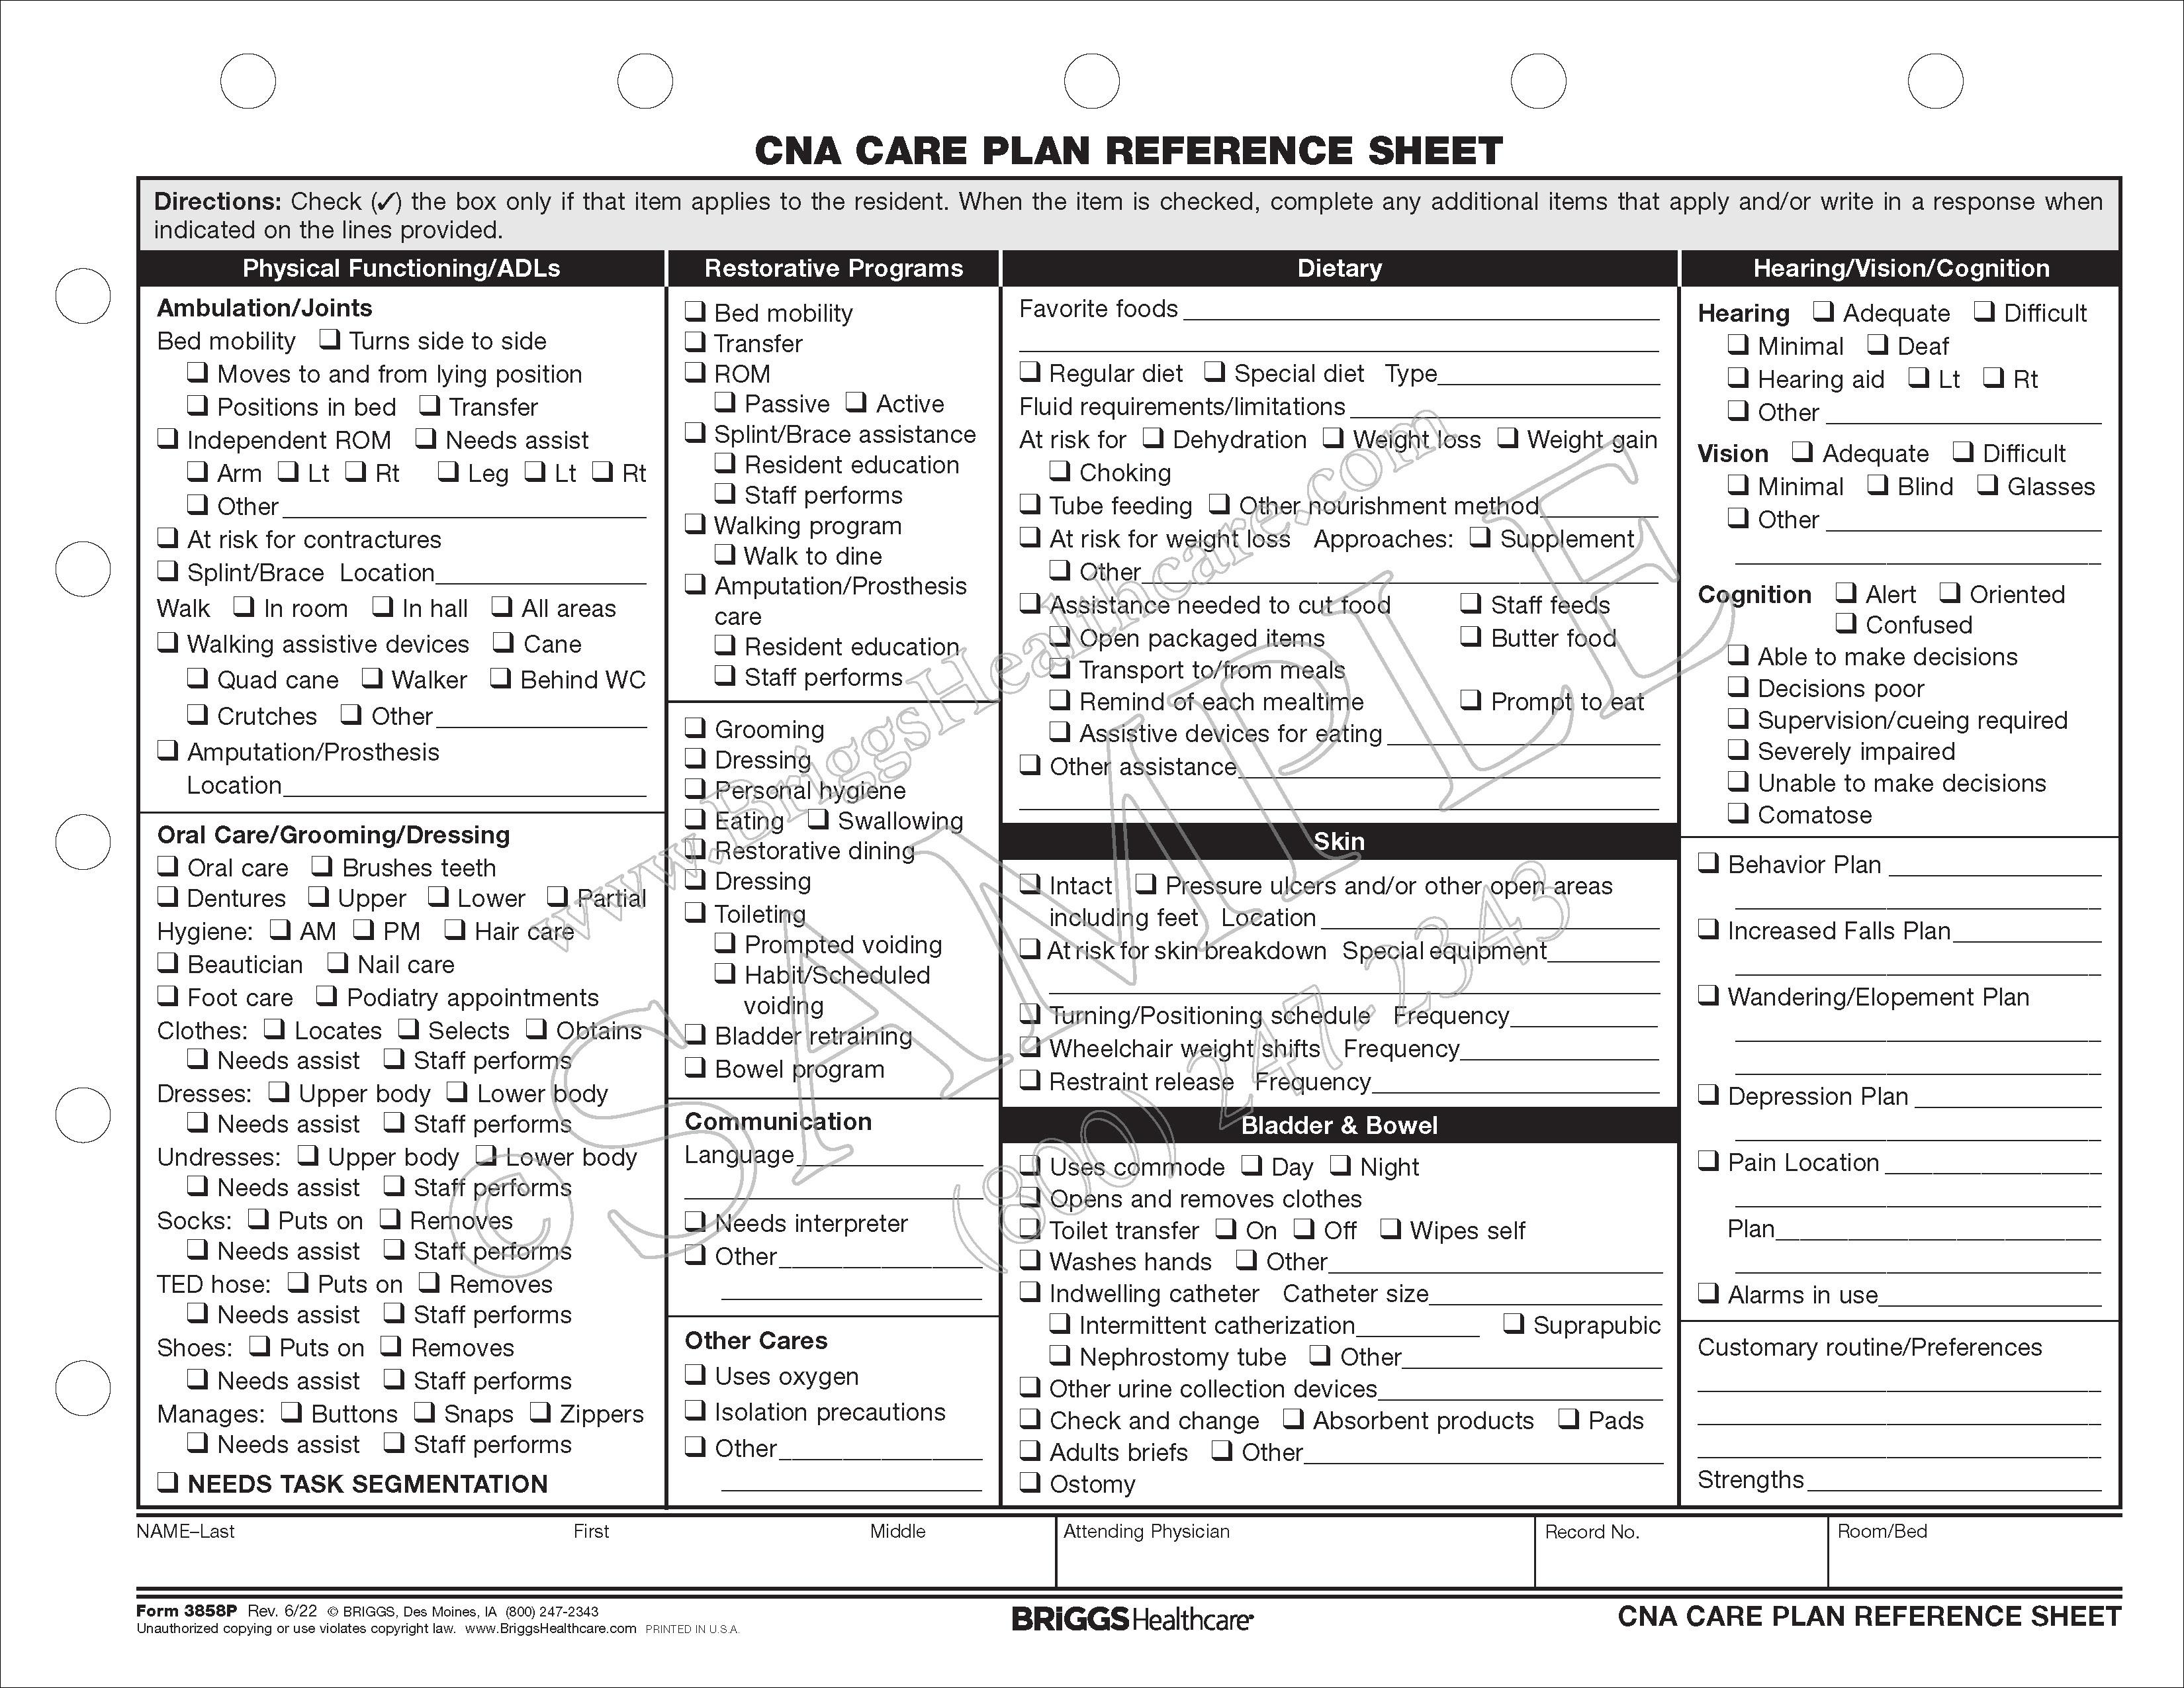 cna care plan reference sheet